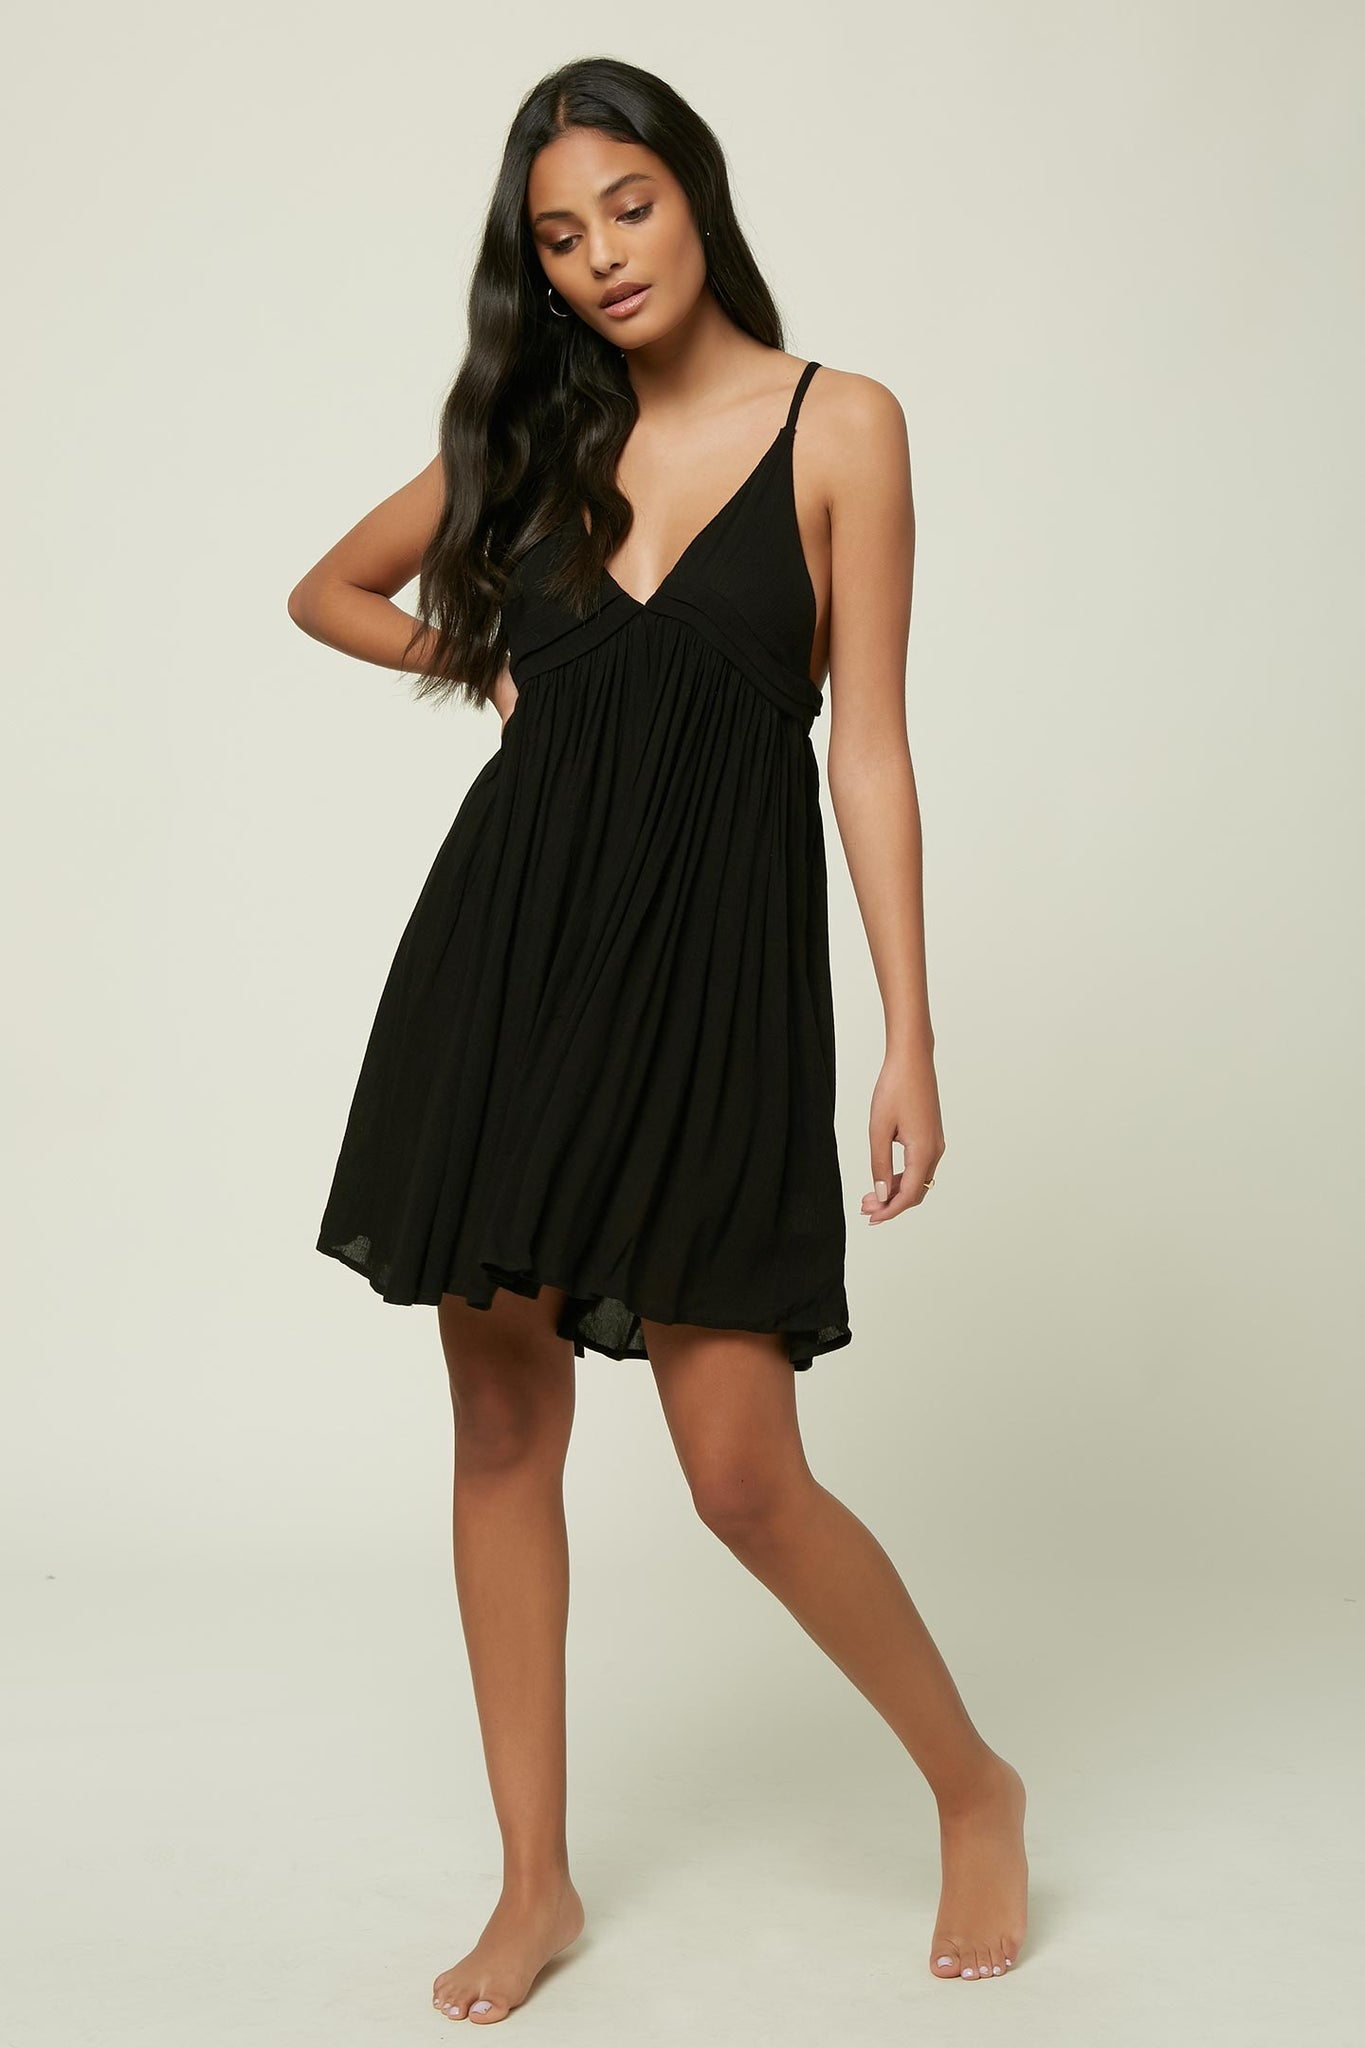 Saltwater Solids Tank Dress Cover-Up - Black | O'Neill